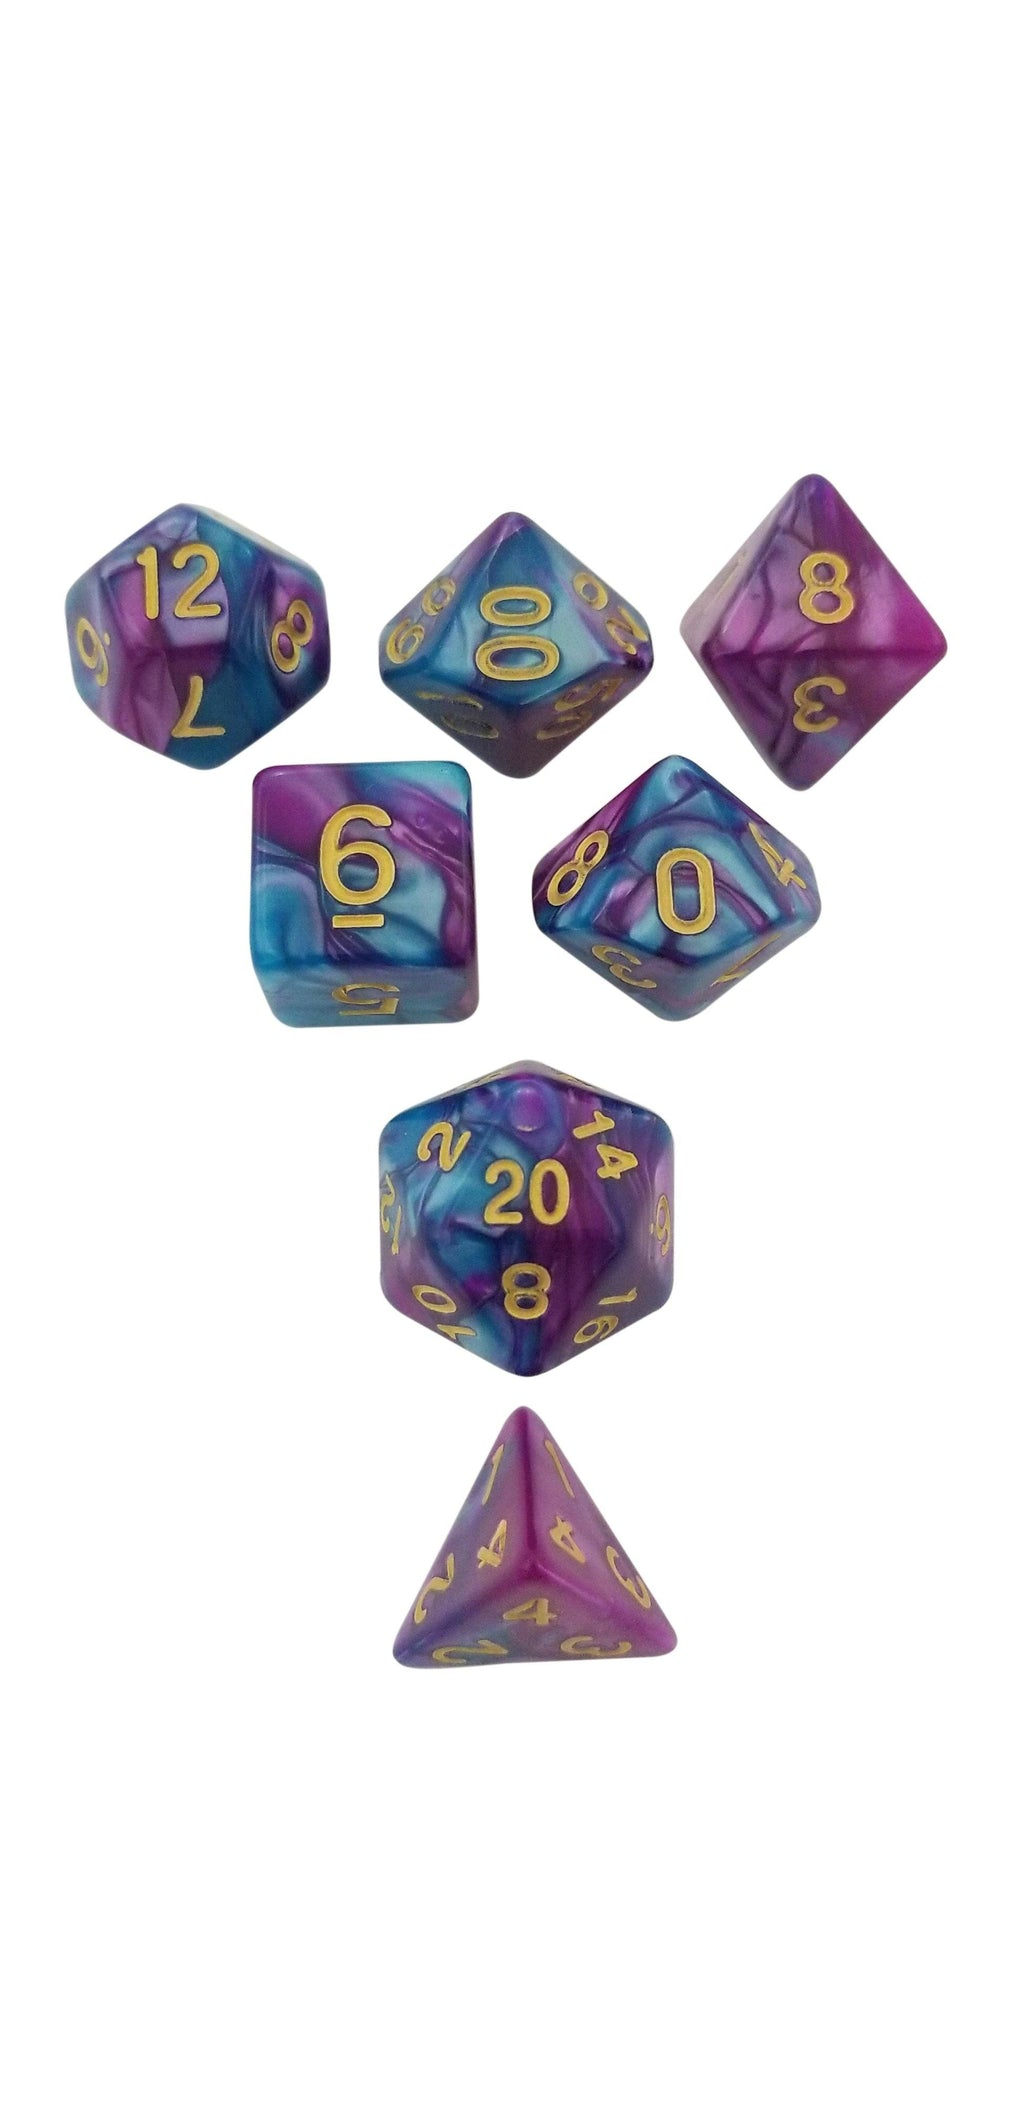 Old Magic - Rich Purple Blue Swirl Set of 7 Polyhedral RPG Dice for D&D